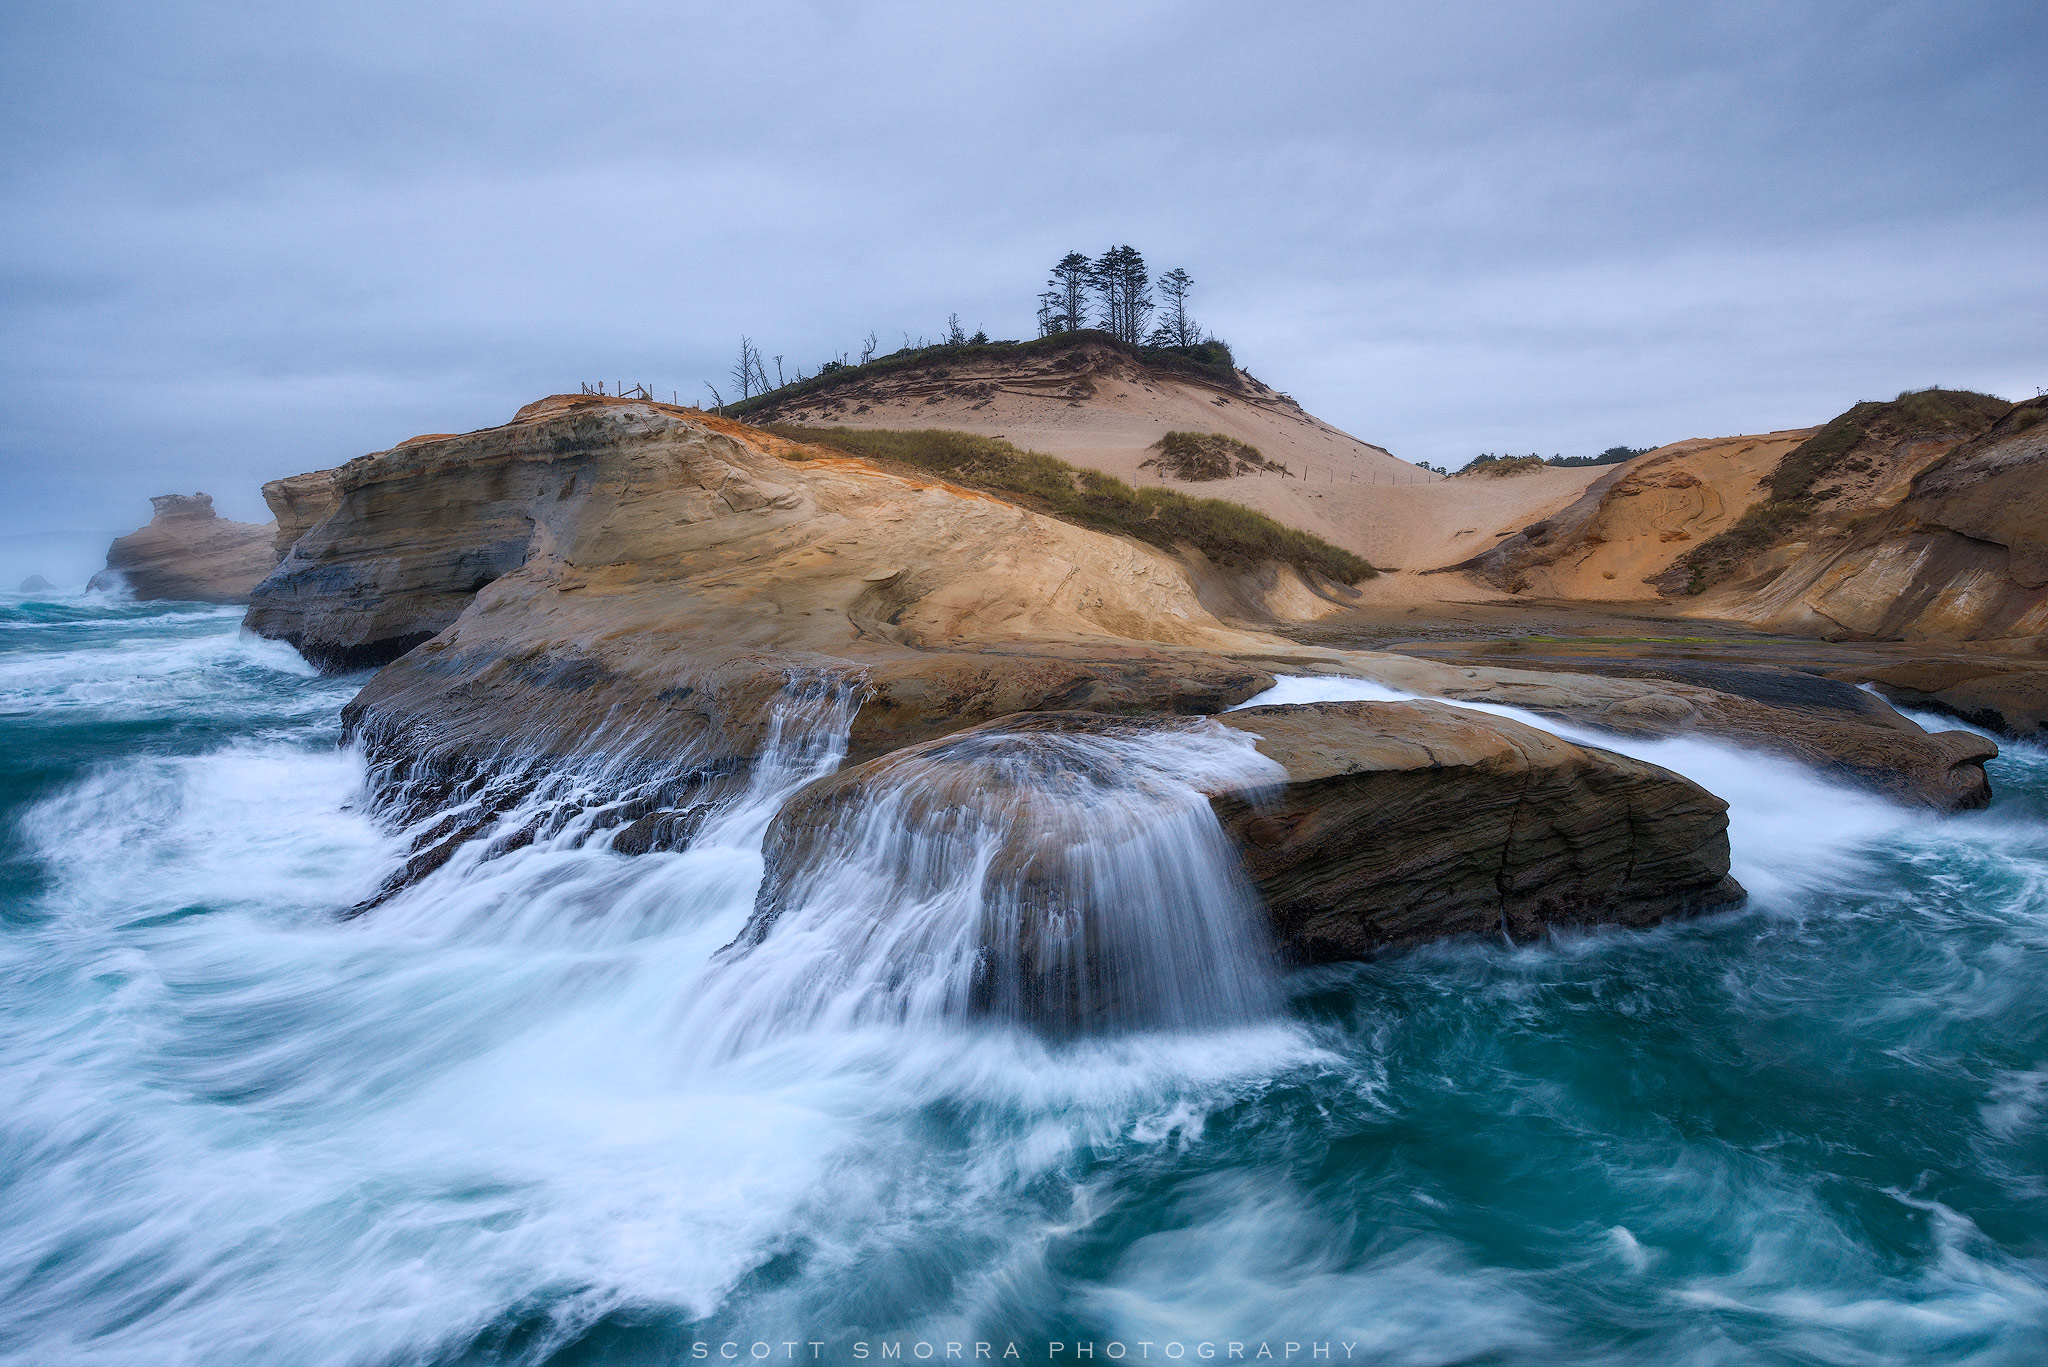 Fine Art Limited Edition of 50 - Ocean wave action at Cape Kiwanda, Oregon. This is one of my favorite locations on the Oregon...